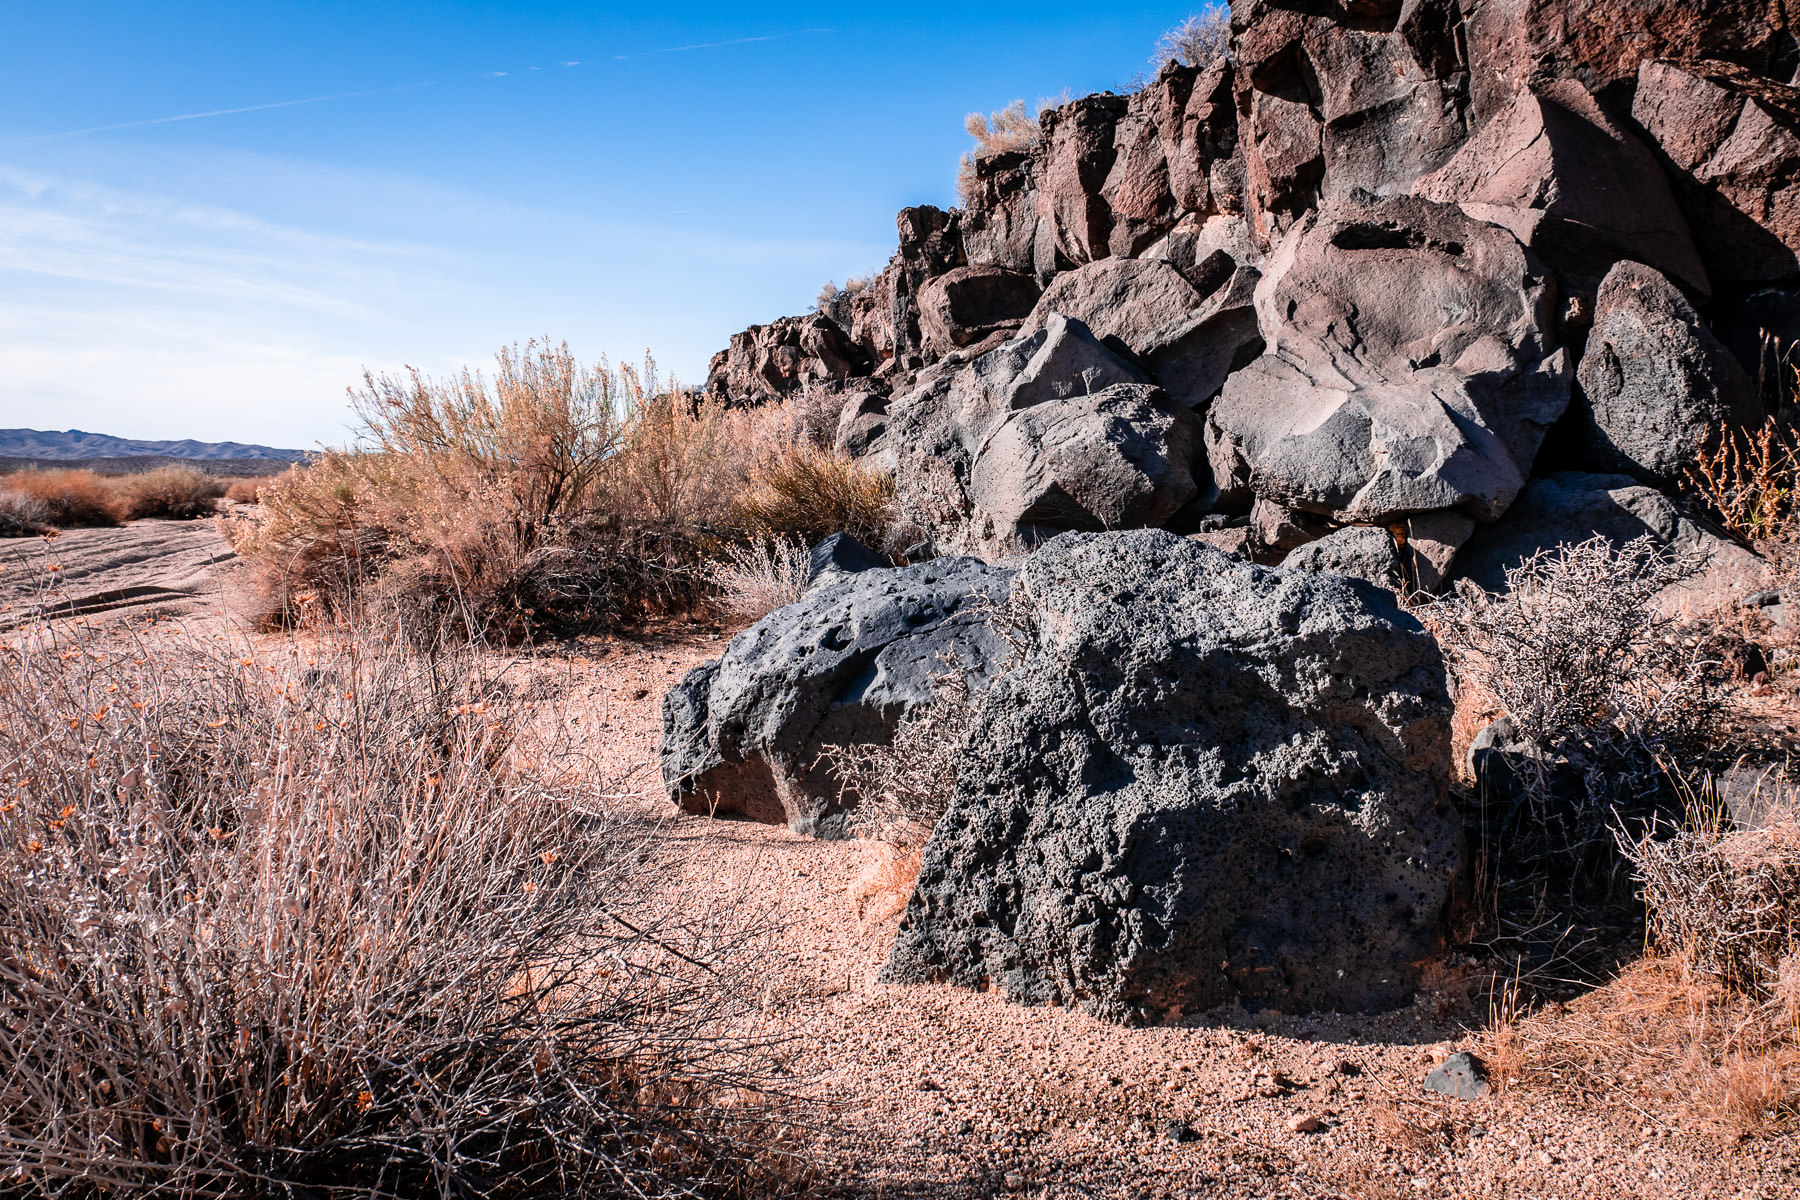 Basalt lava flows in the Mojave National Preserve, California.